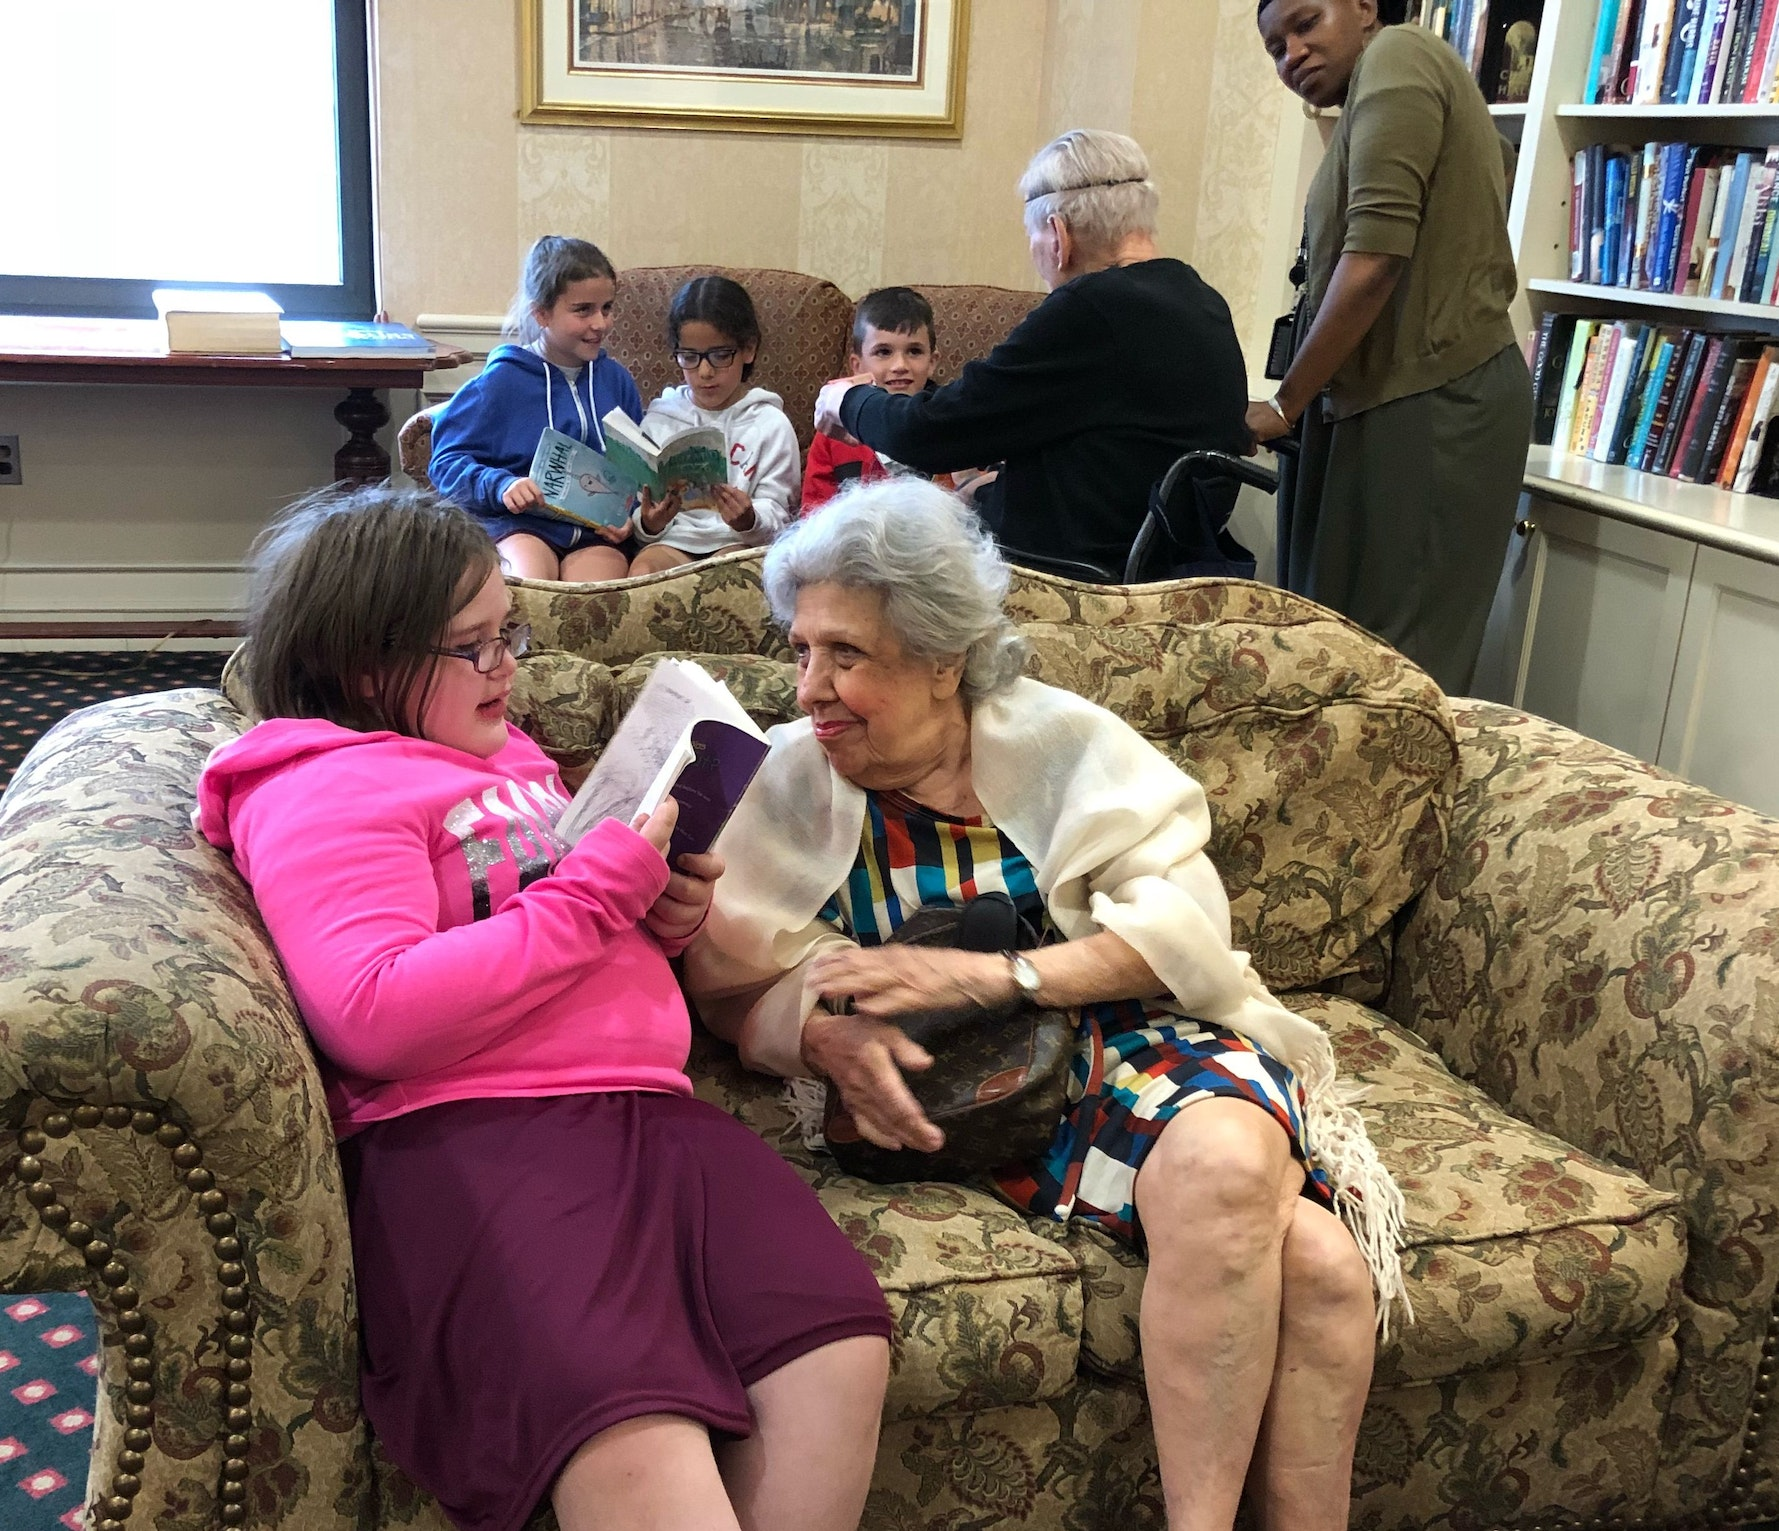 Young female student reads a book to a female senior citizen